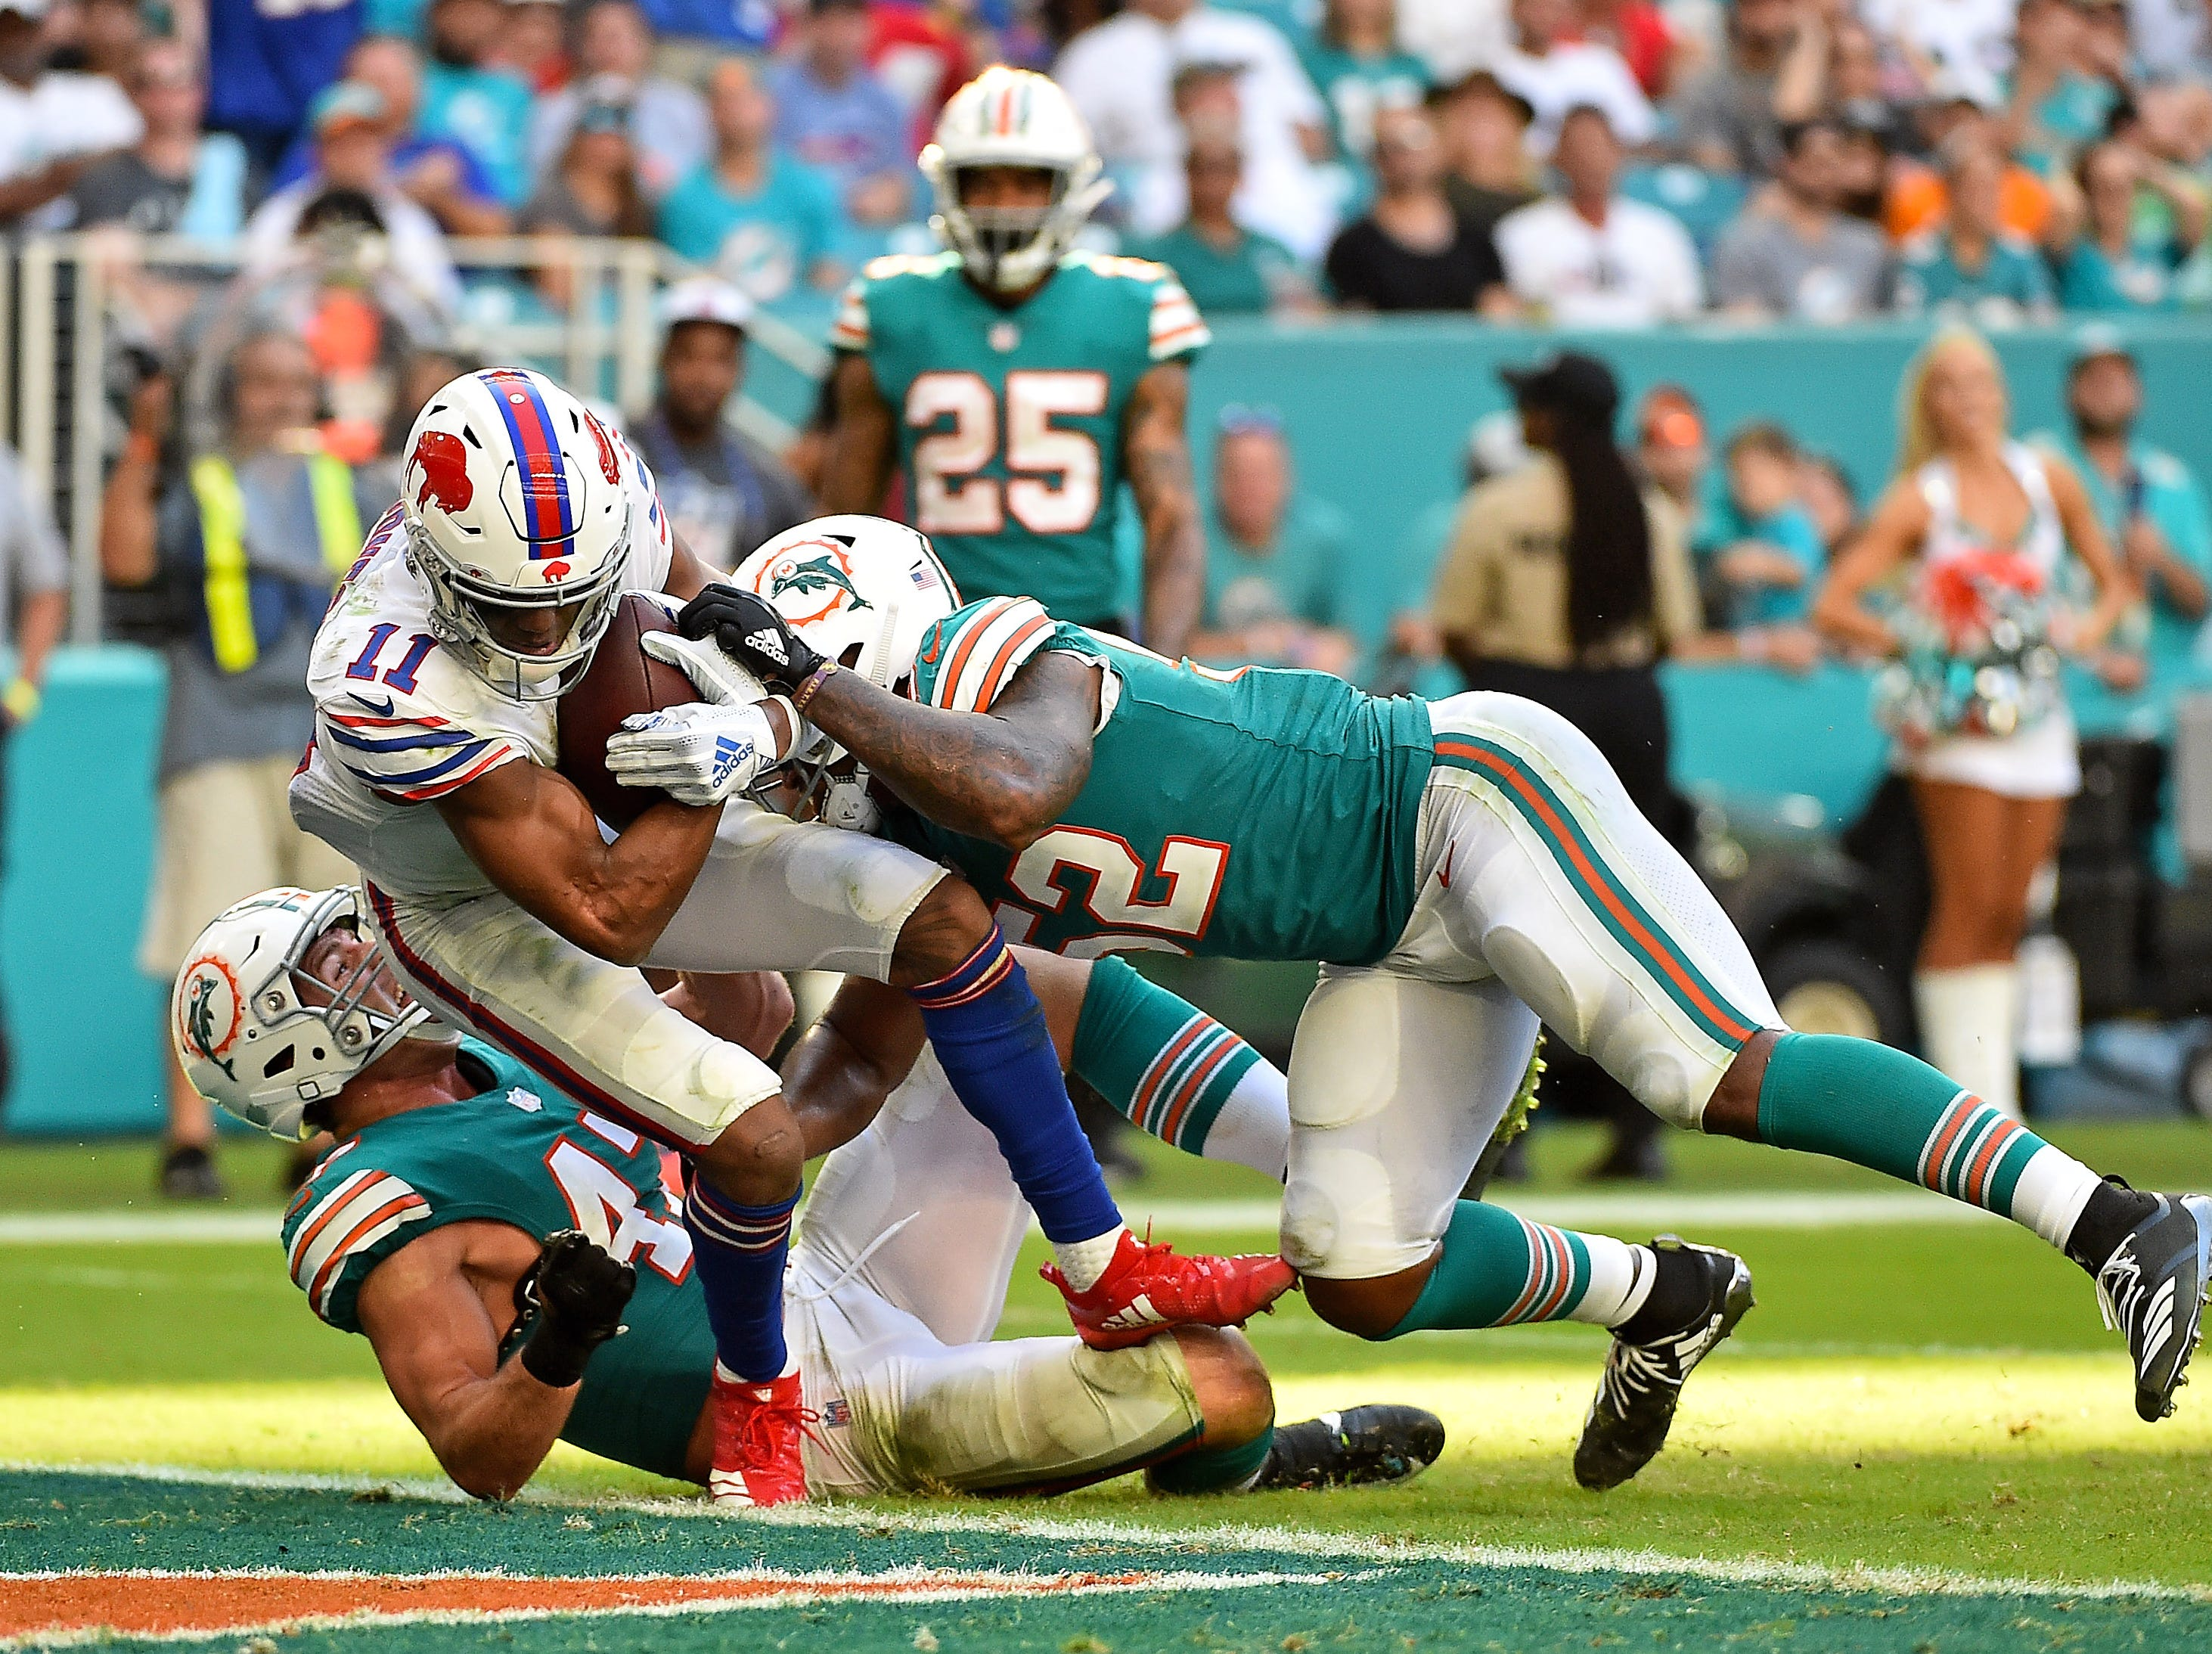 Dec 2, 2018; Miami Gardens, FL, USA; Buffalo Bills wide receiver Zay Jones (11) is brought down in the end zone to score a touchdown against the Miami Dolphins during the second half at Hard Rock Stadium. Mandatory Credit: Jasen Vinlove-USA TODAY Sports